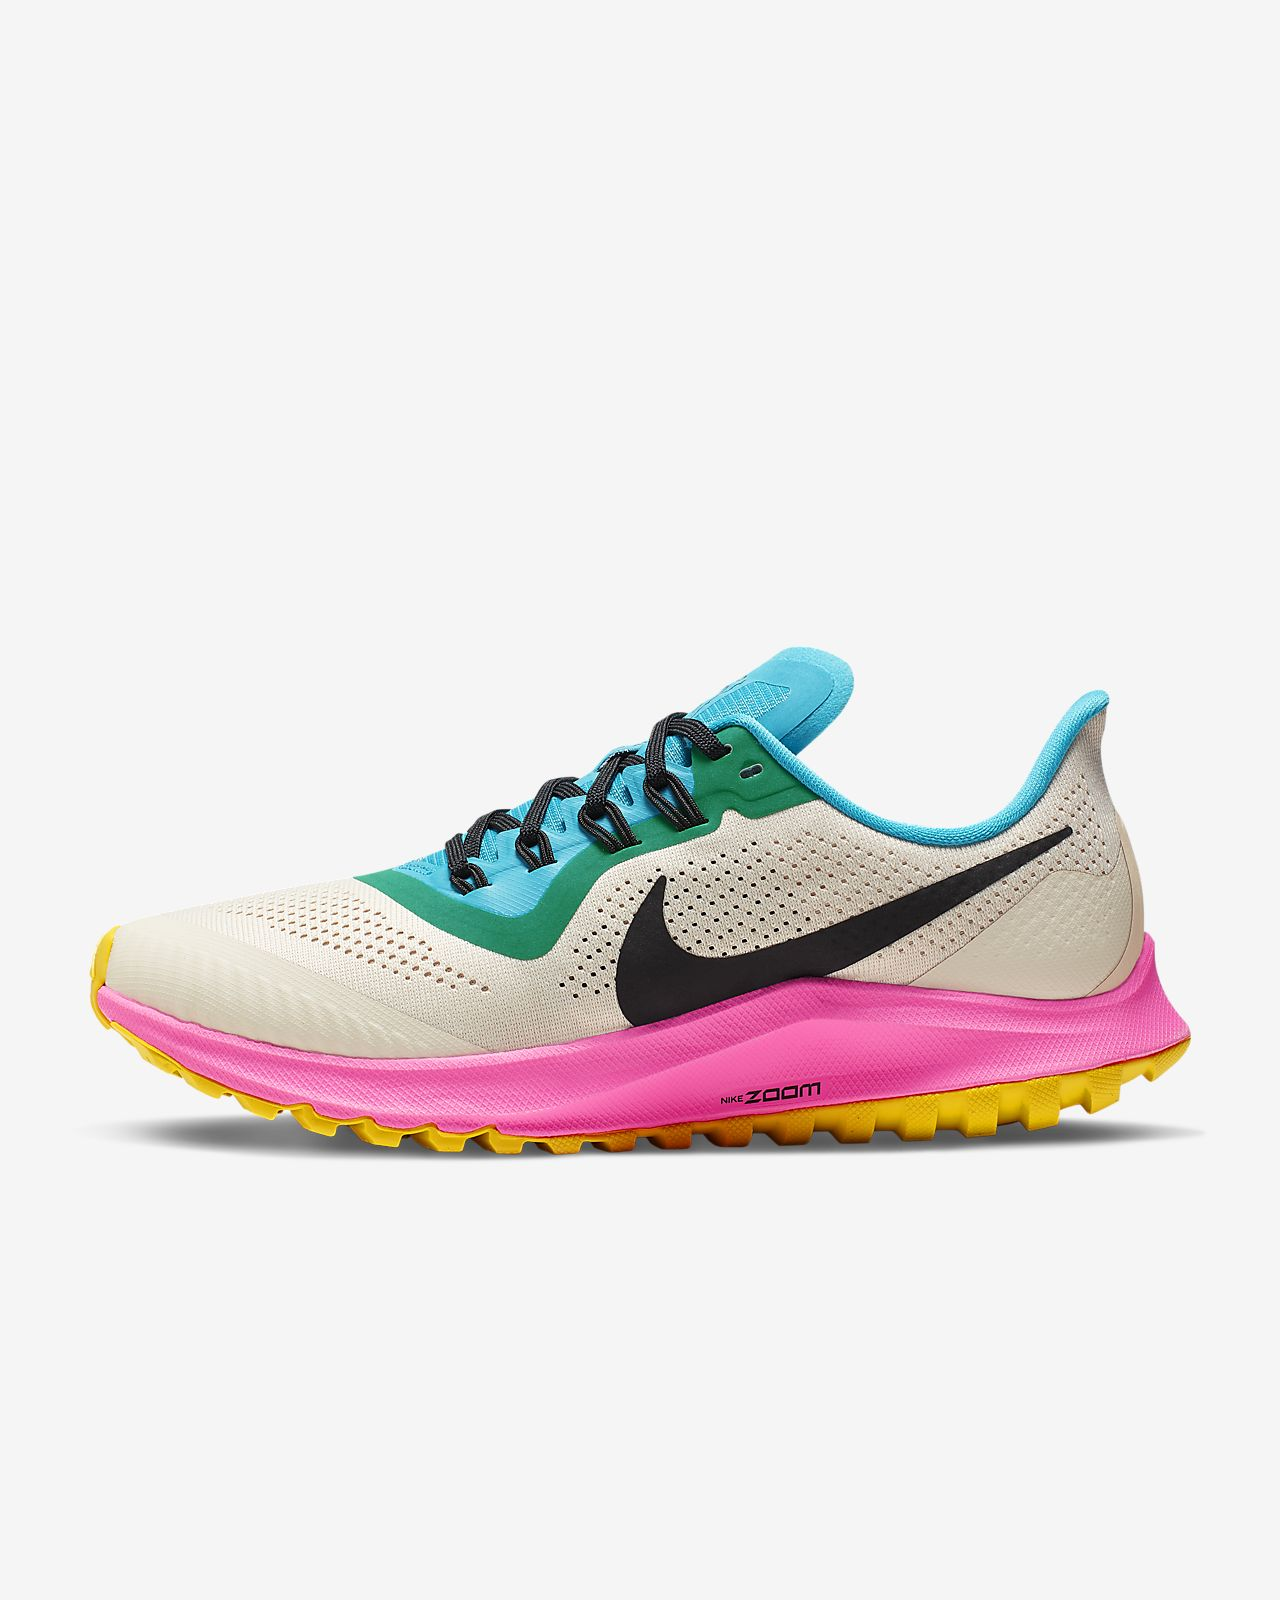 ab1c1c592502 Nike Air Zoom Pegasus 36 Trail Women's Running Shoe. Nike.com GB